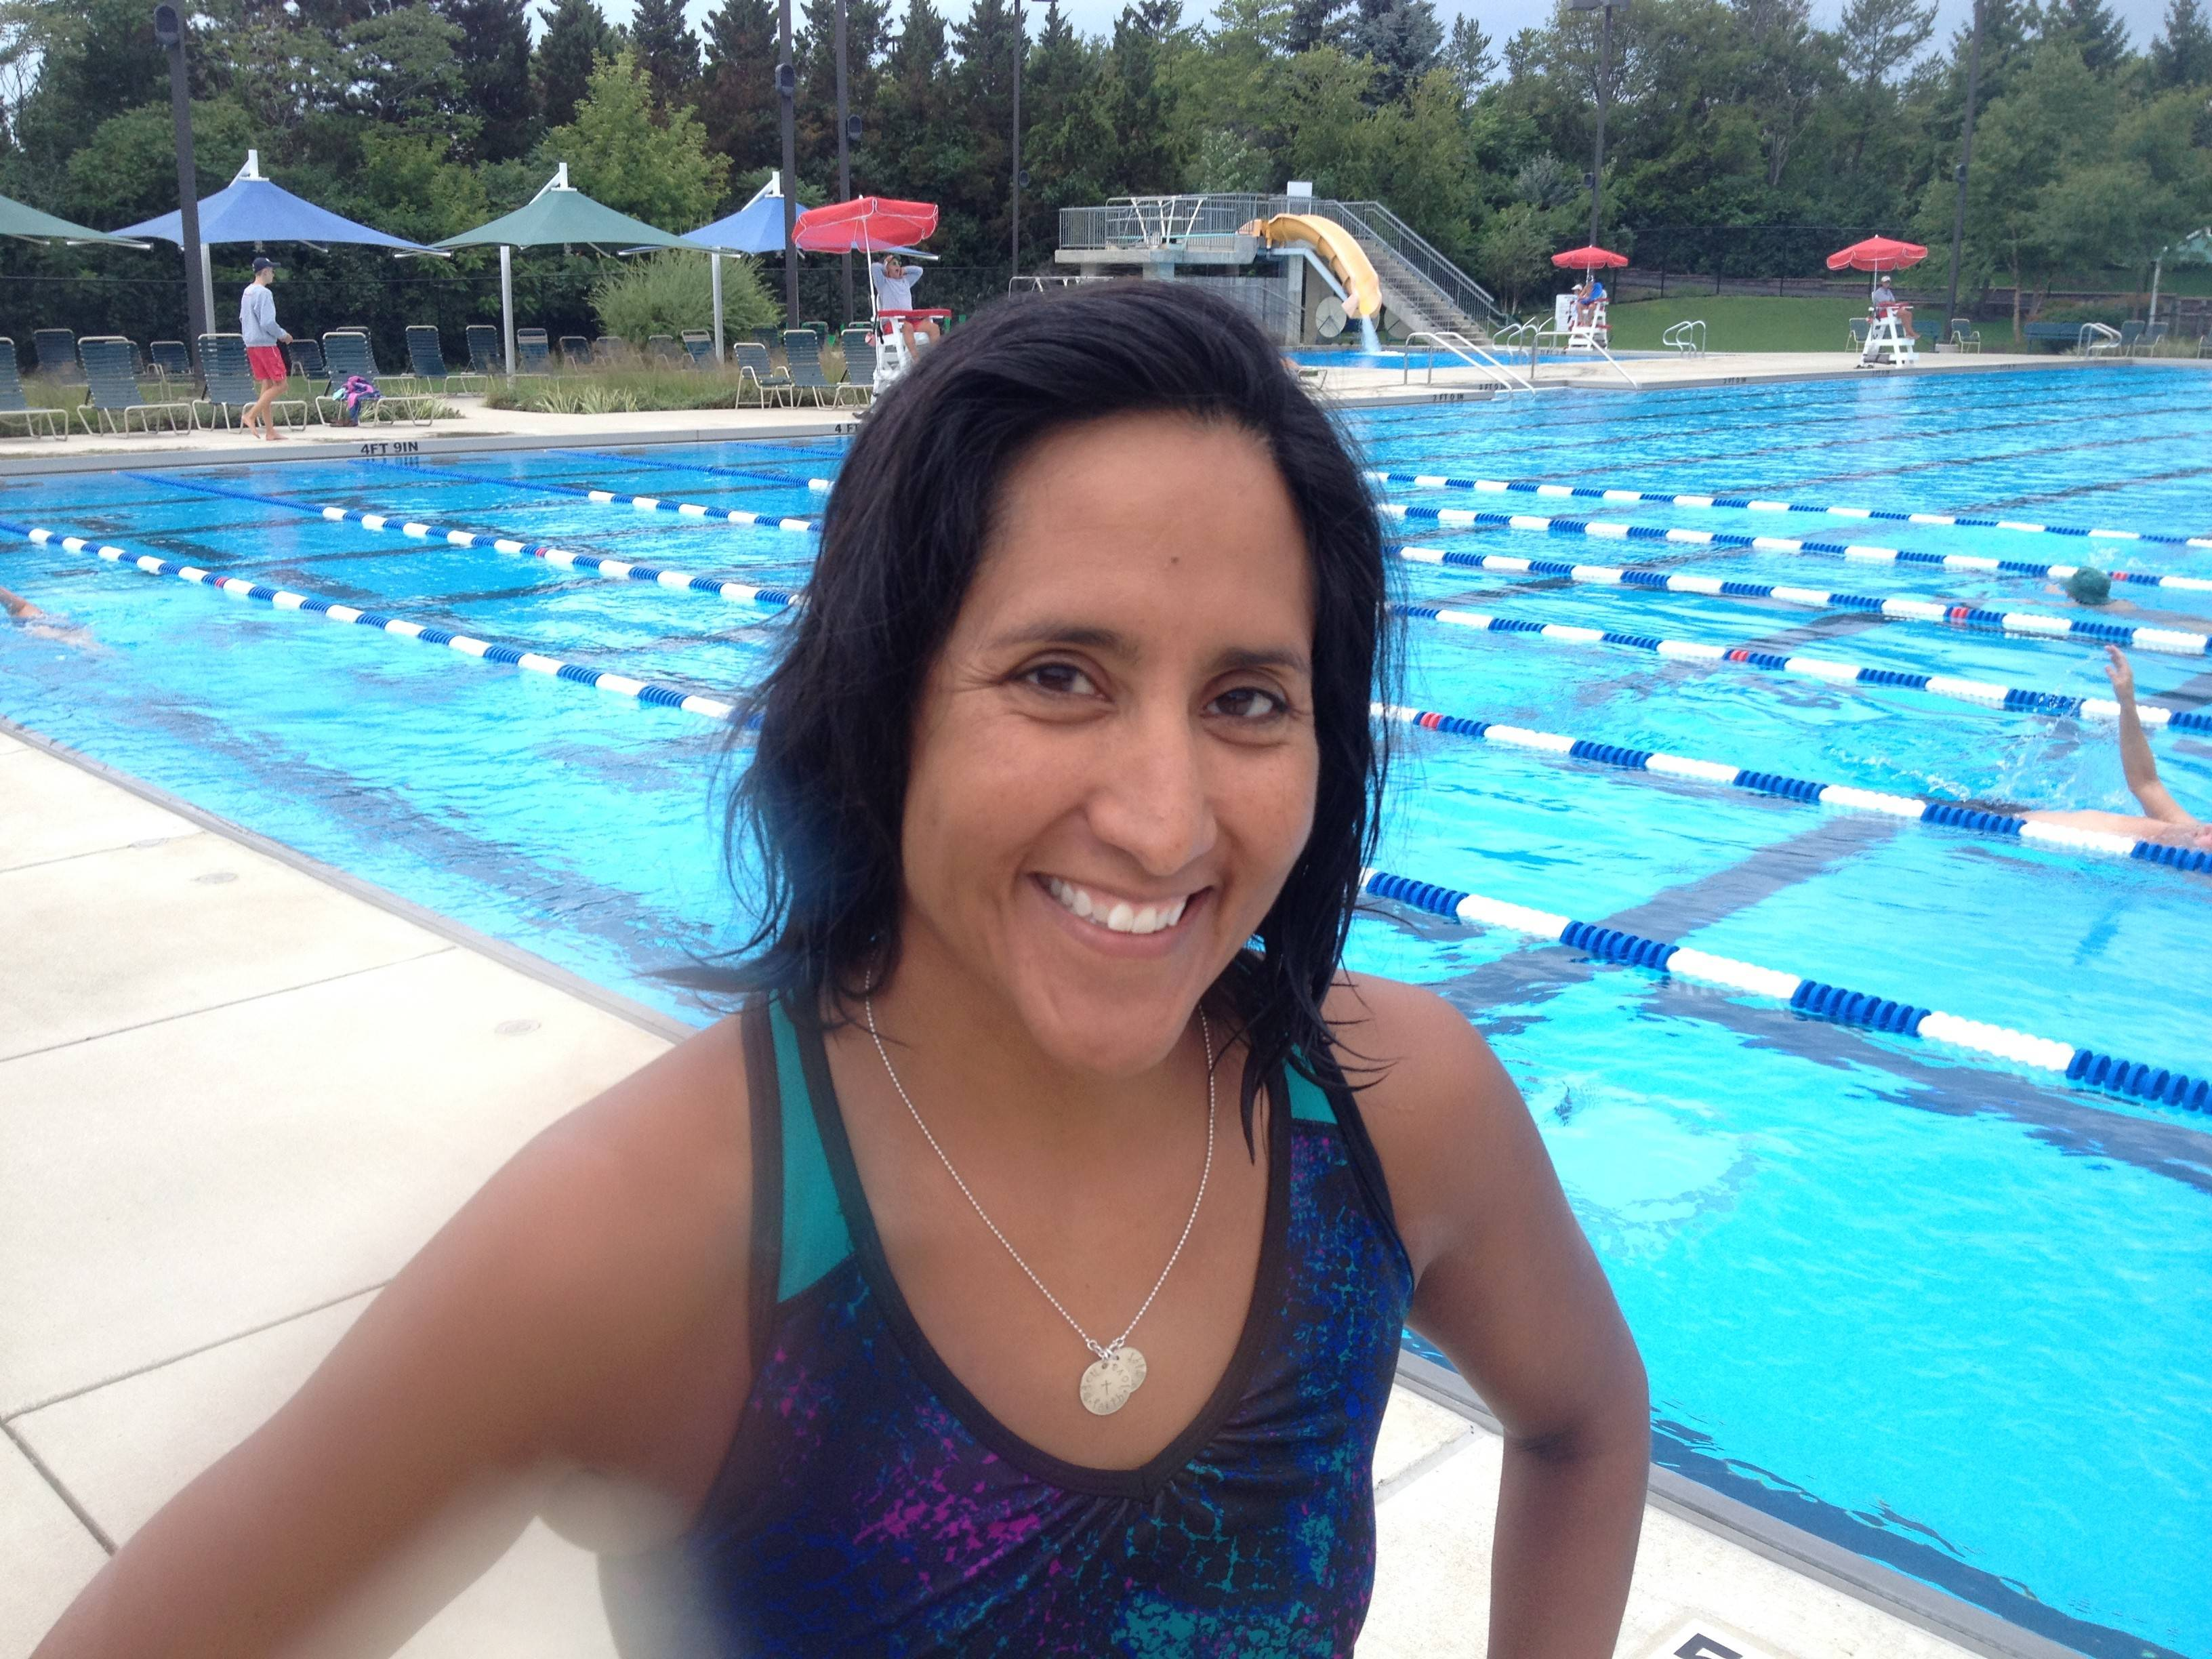 Palatine's Christine Gates will attempt an Ironman triathlon — 2.4-mile swim, 112-mile bike and 26.2-mile run — Sept. 7 in Madison, Wisconsin.